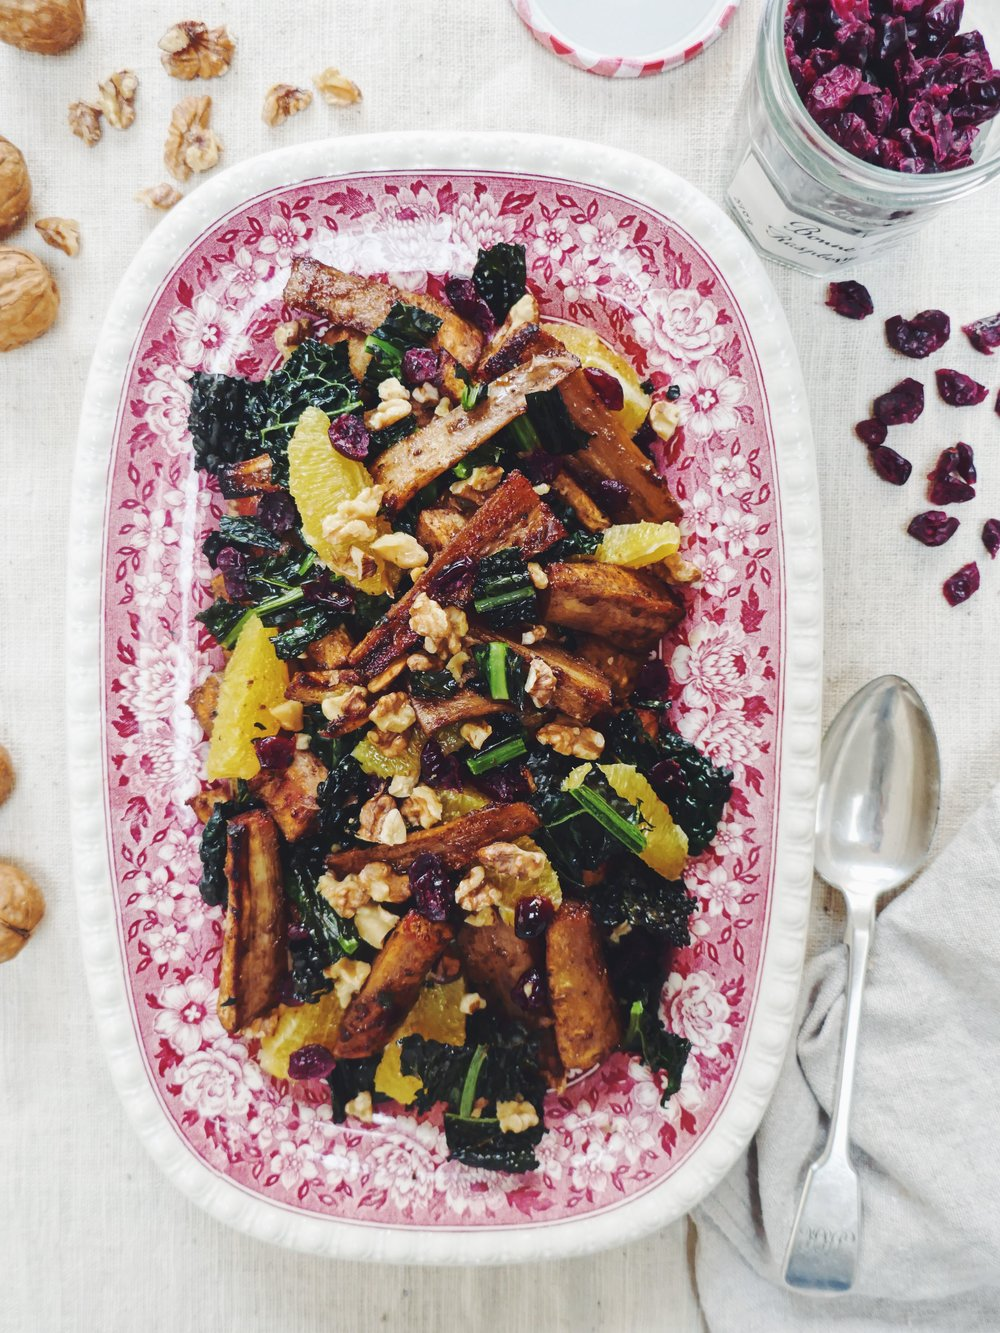 With the a fragrant spice of cardamom and clove this is is the perfect side dish to a Sunday lunch when you fancy something a little more flavourful than your usual roast spuds. It makes delicious leftovers too.